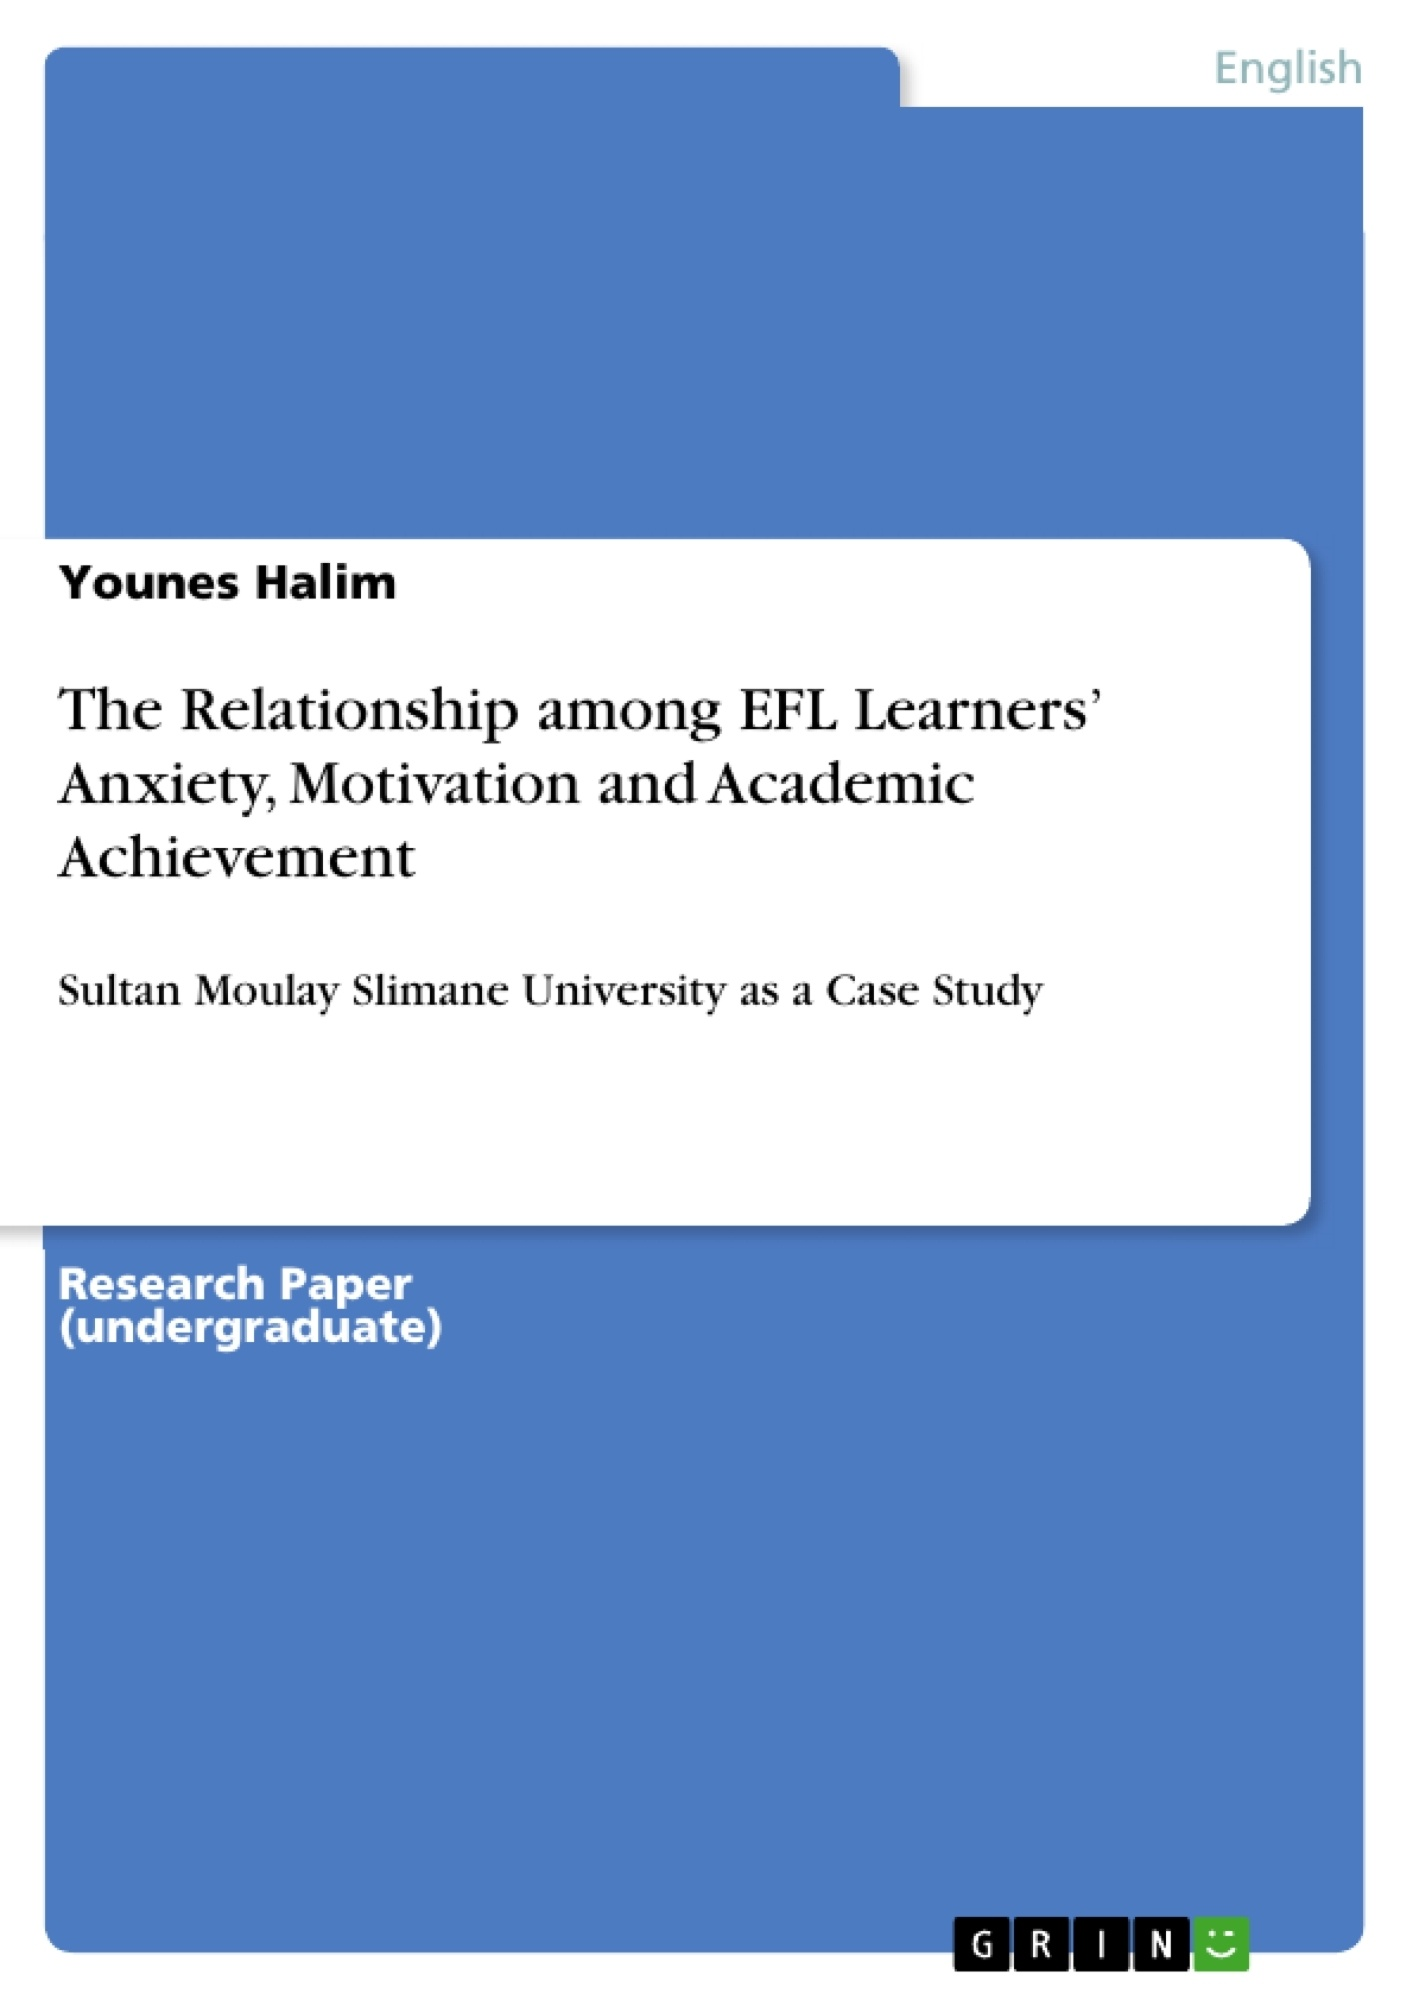 Title: The Relationship among EFL Learners' Anxiety, Motivation and Academic Achievement